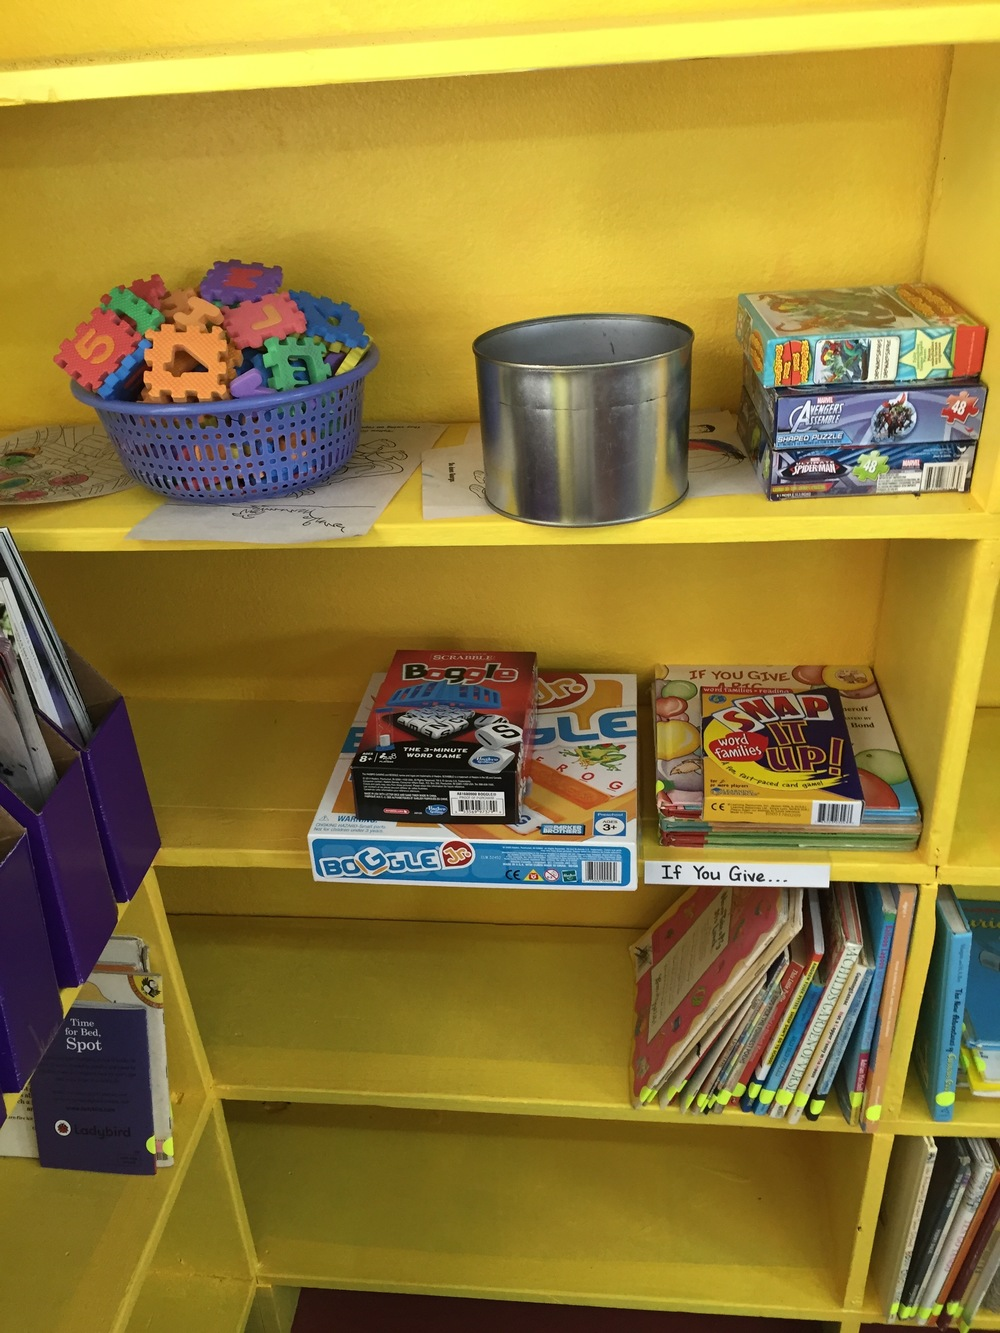 In addition to reading, boys can draw, colour, do puzzles, and play games. All of which will help them develop their literacy skills, while they have fun.